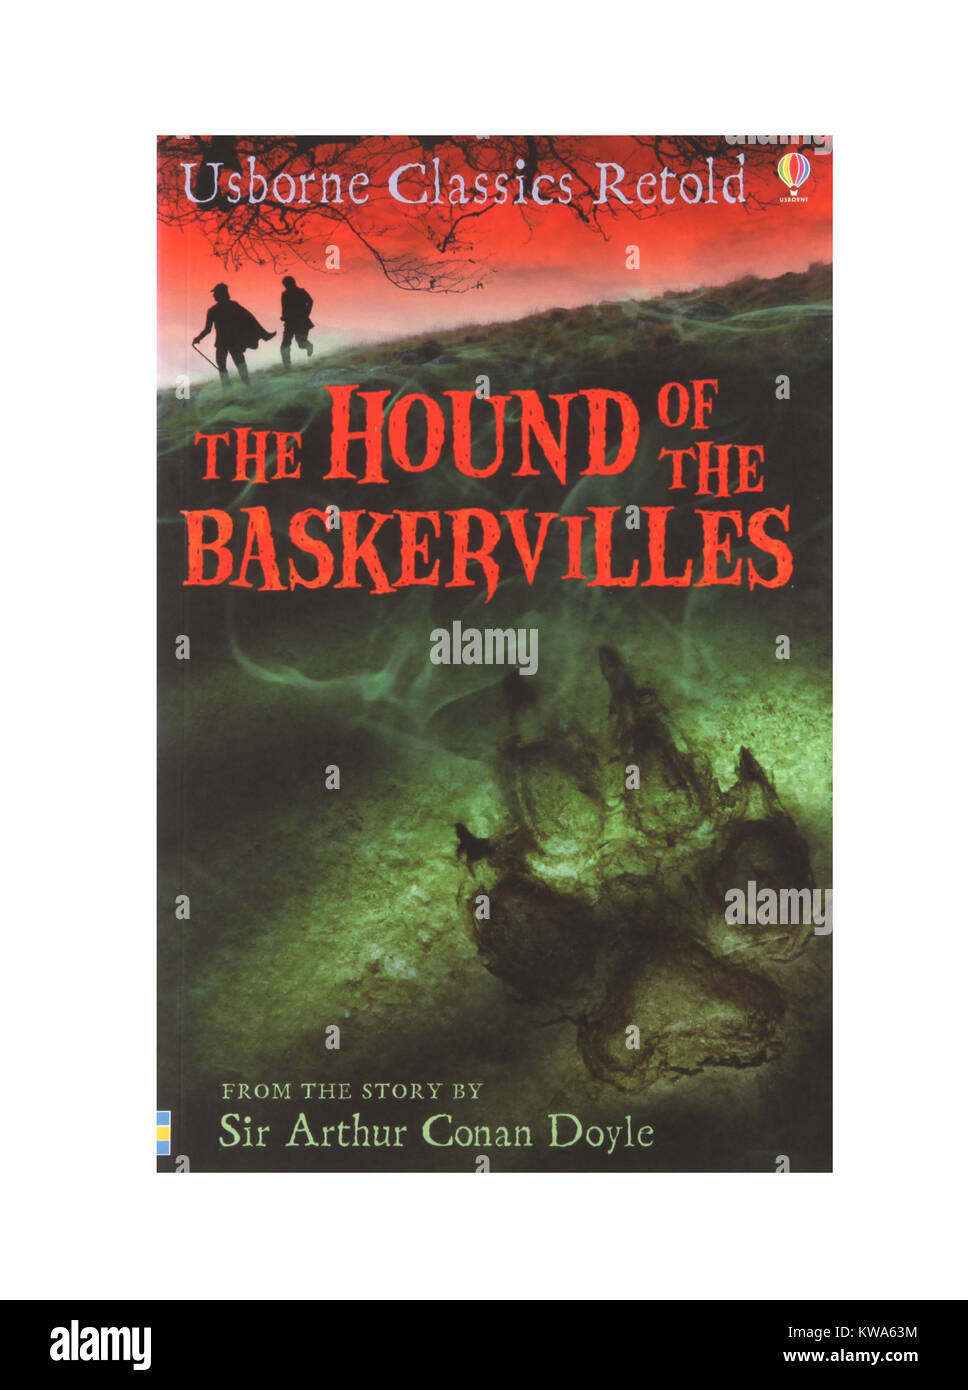 The book, The Hounds of the Baskervilles by Sir Arthur Conan Doyle - Stock Image